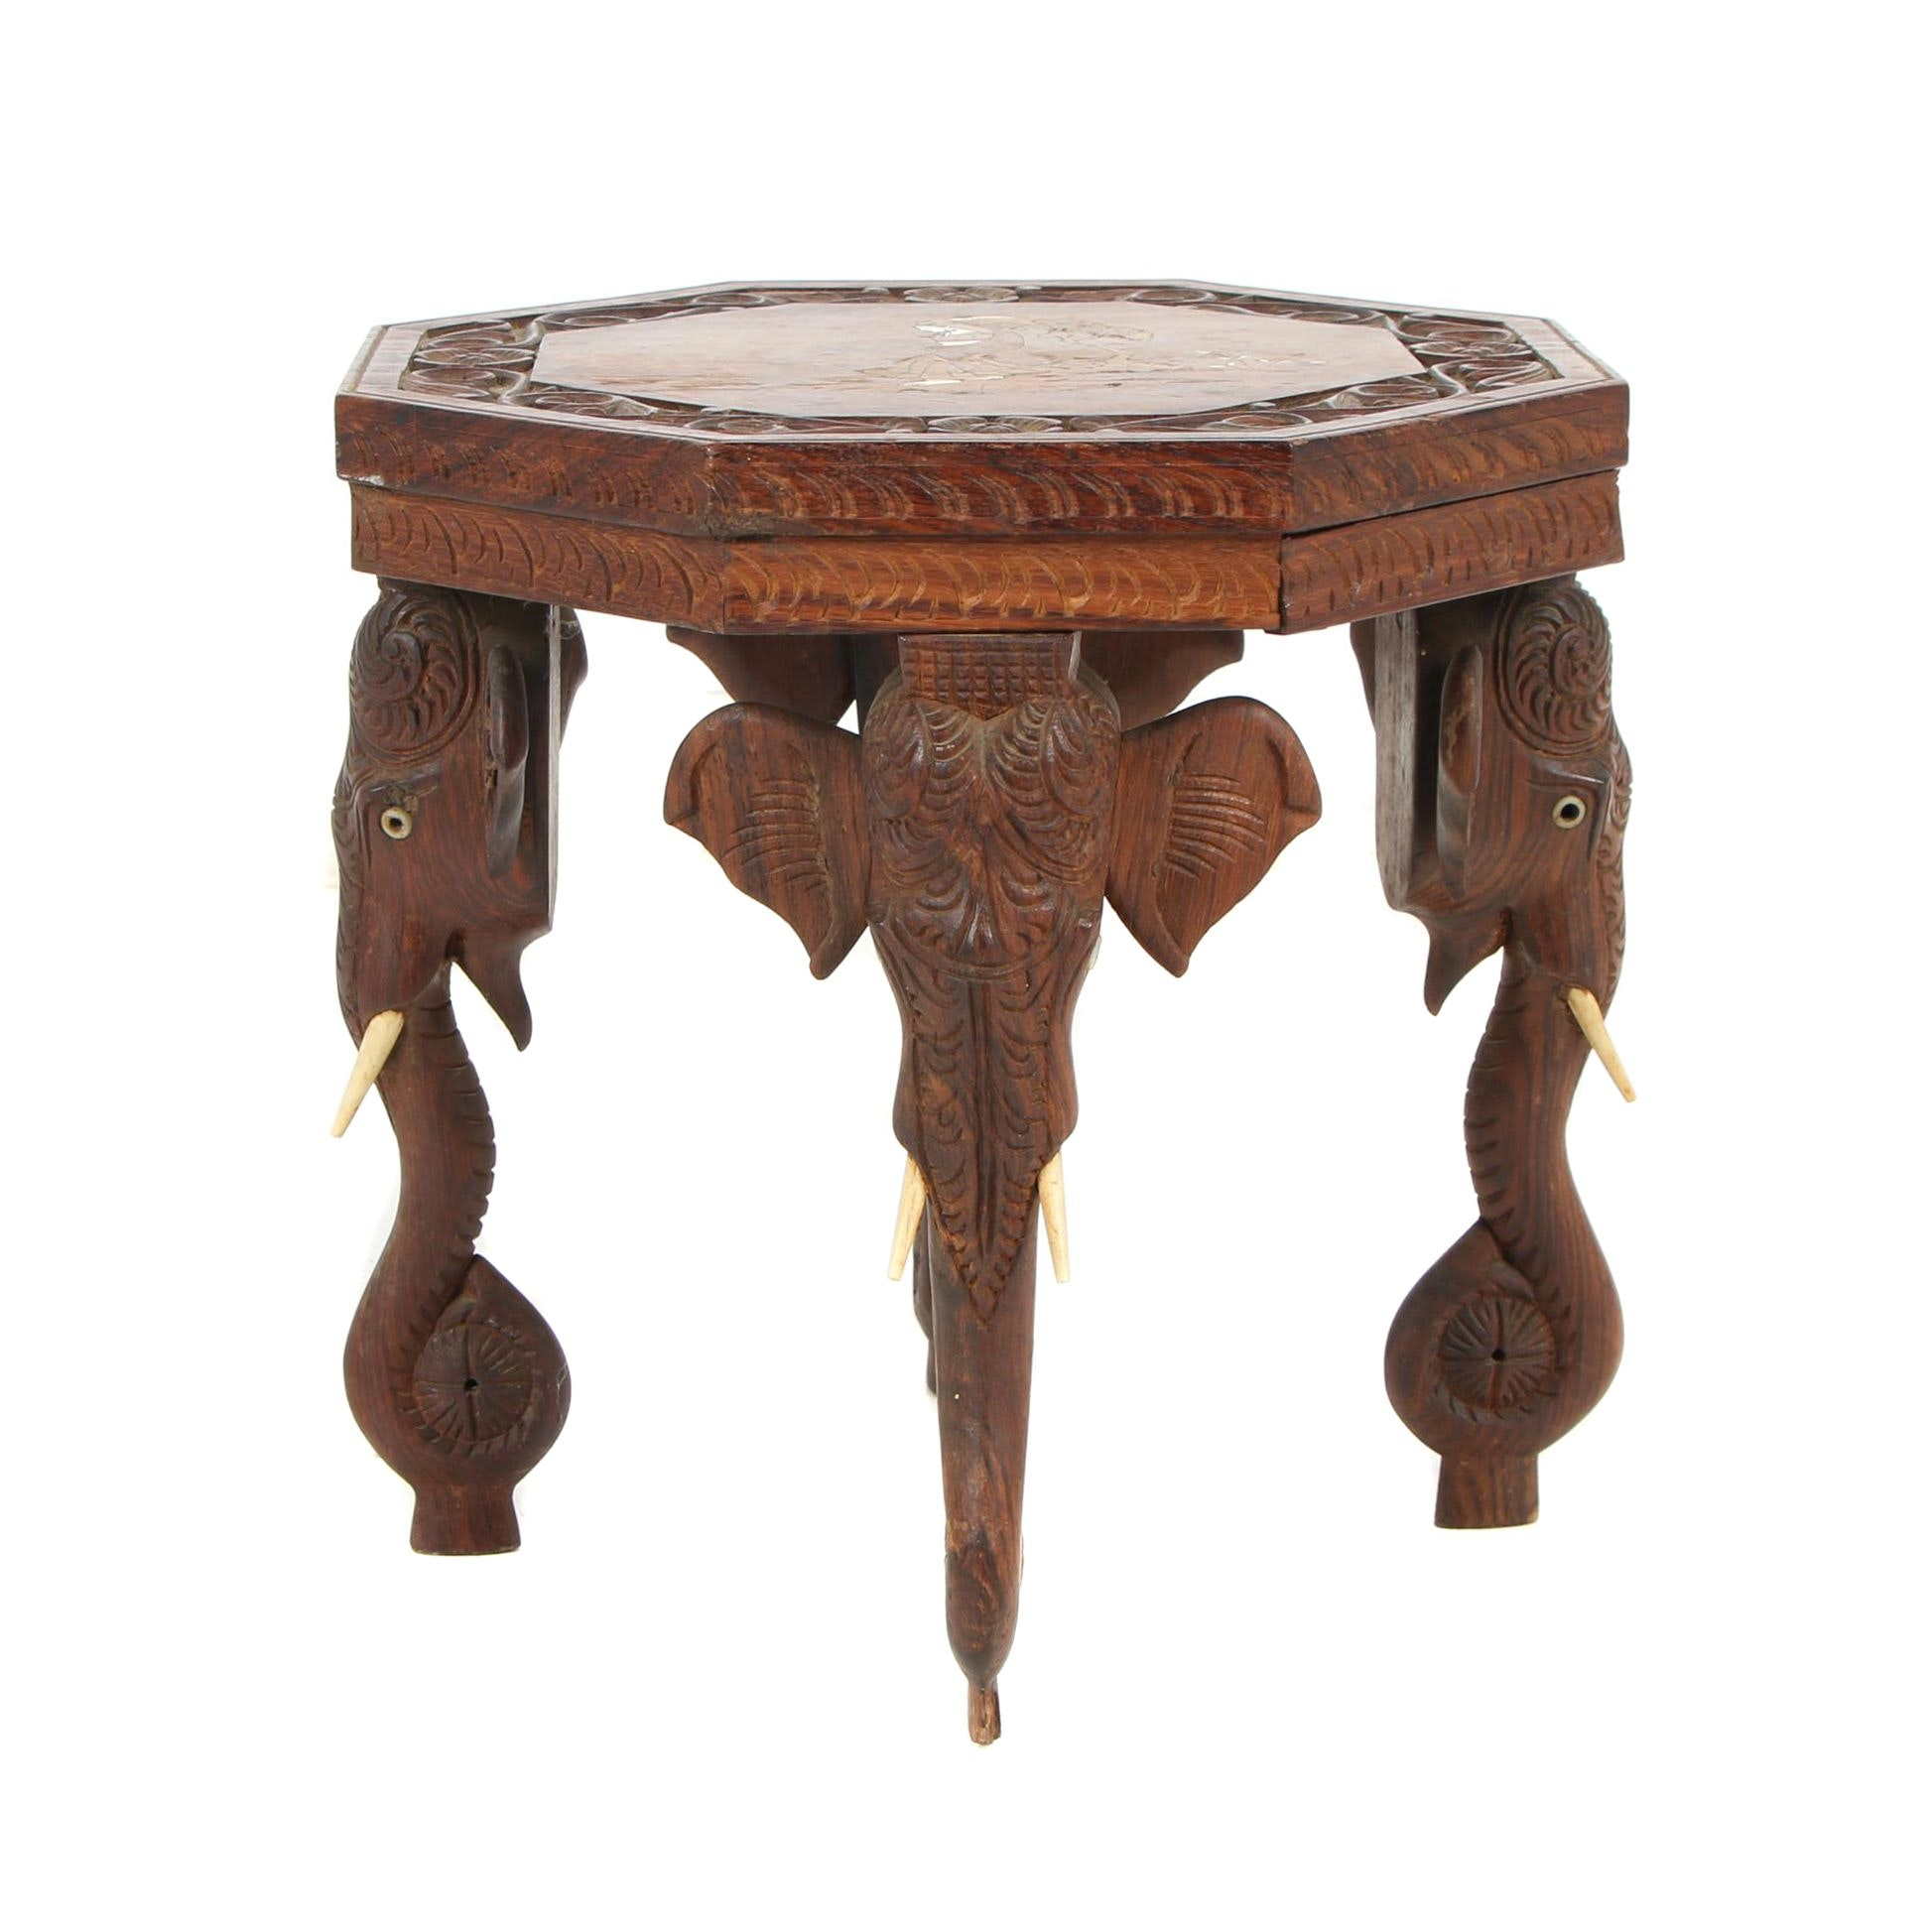 Indian Carved Exotic Hardwood Side Table with Elephant Motif Legs, 20th Century